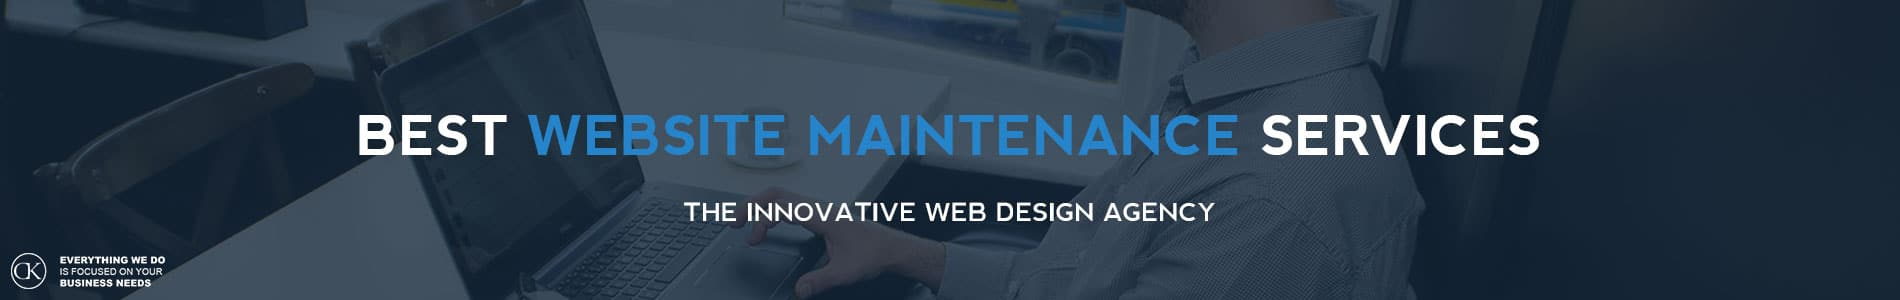 BEST website maintenance services dublin by CK web design dublin